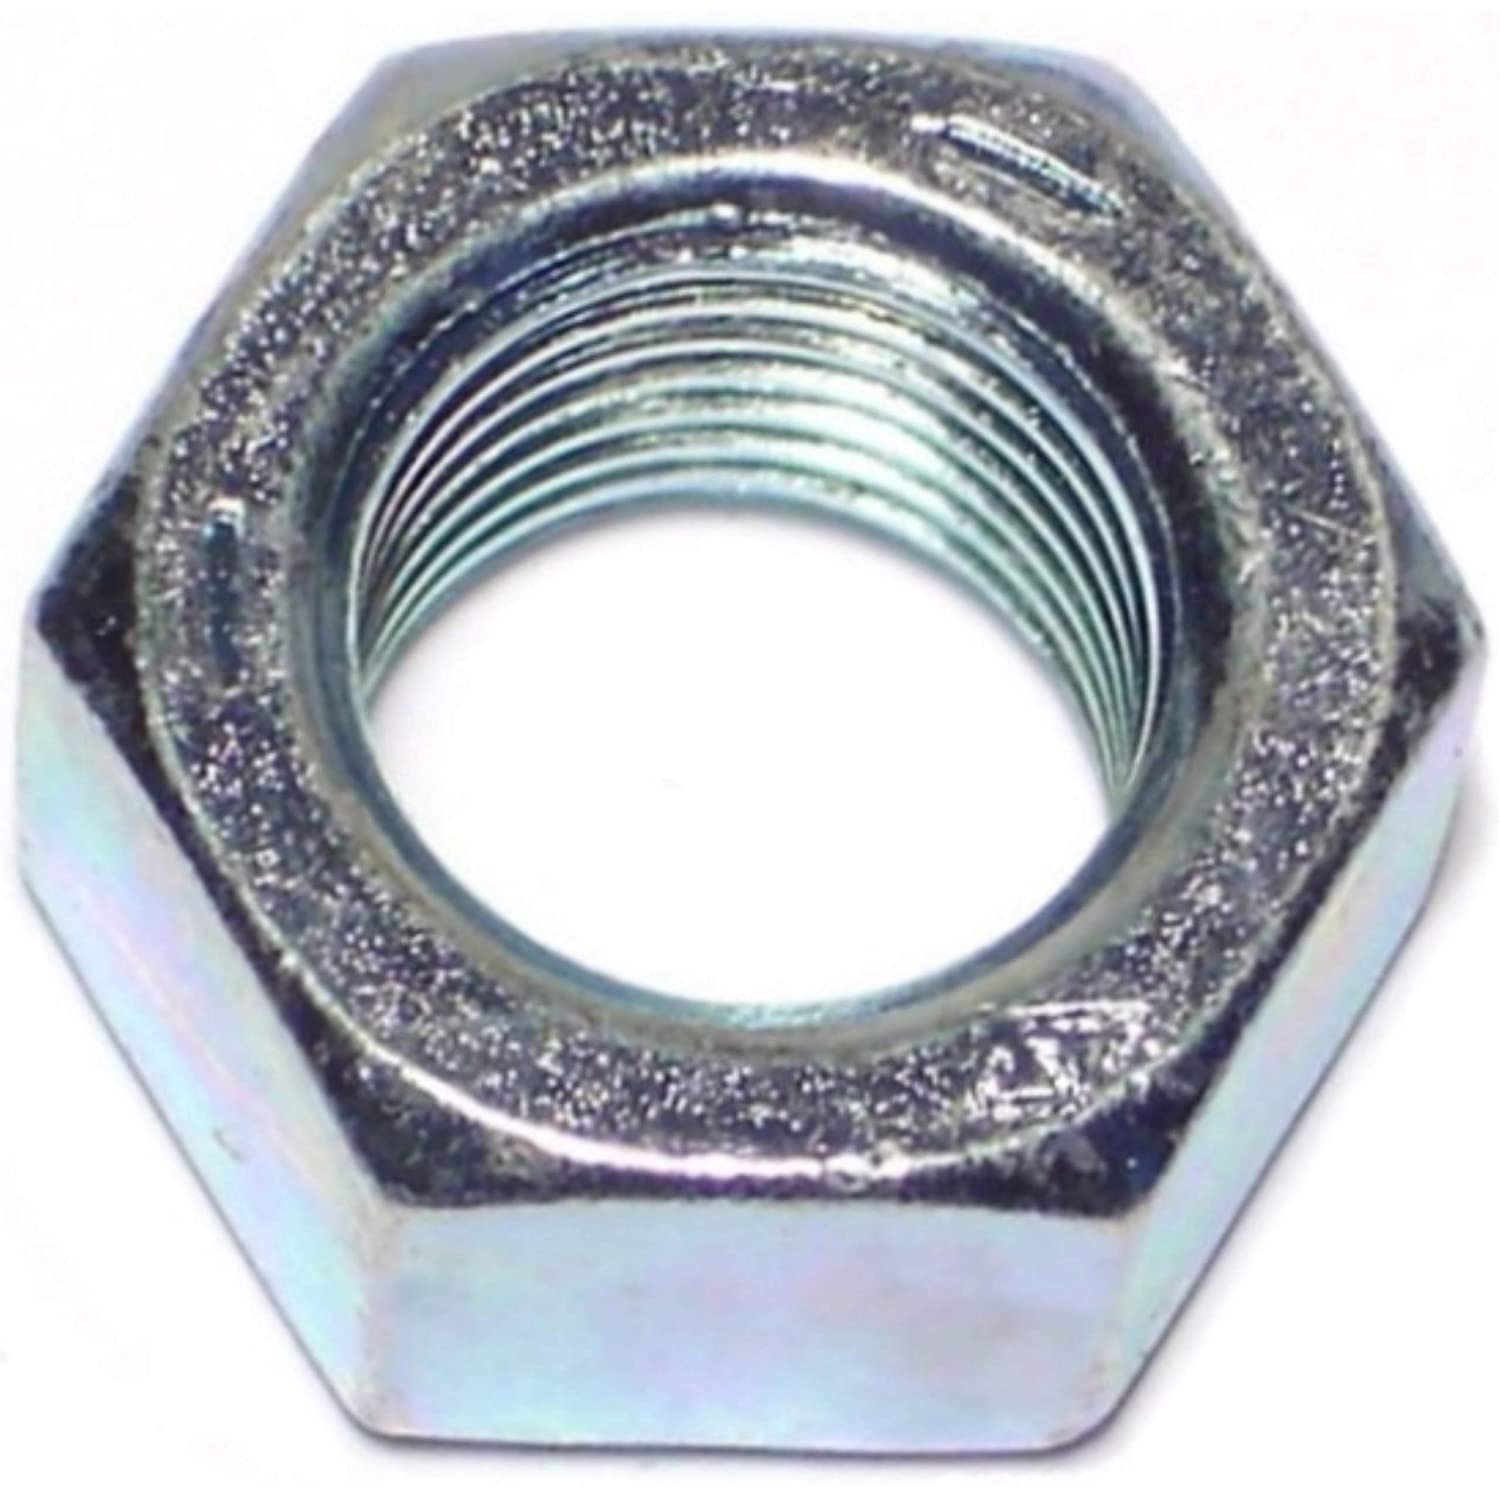 Hard-to-Find Fastener 014973241964 Coarse Finished Hex Nuts Piece-25 1//2-13